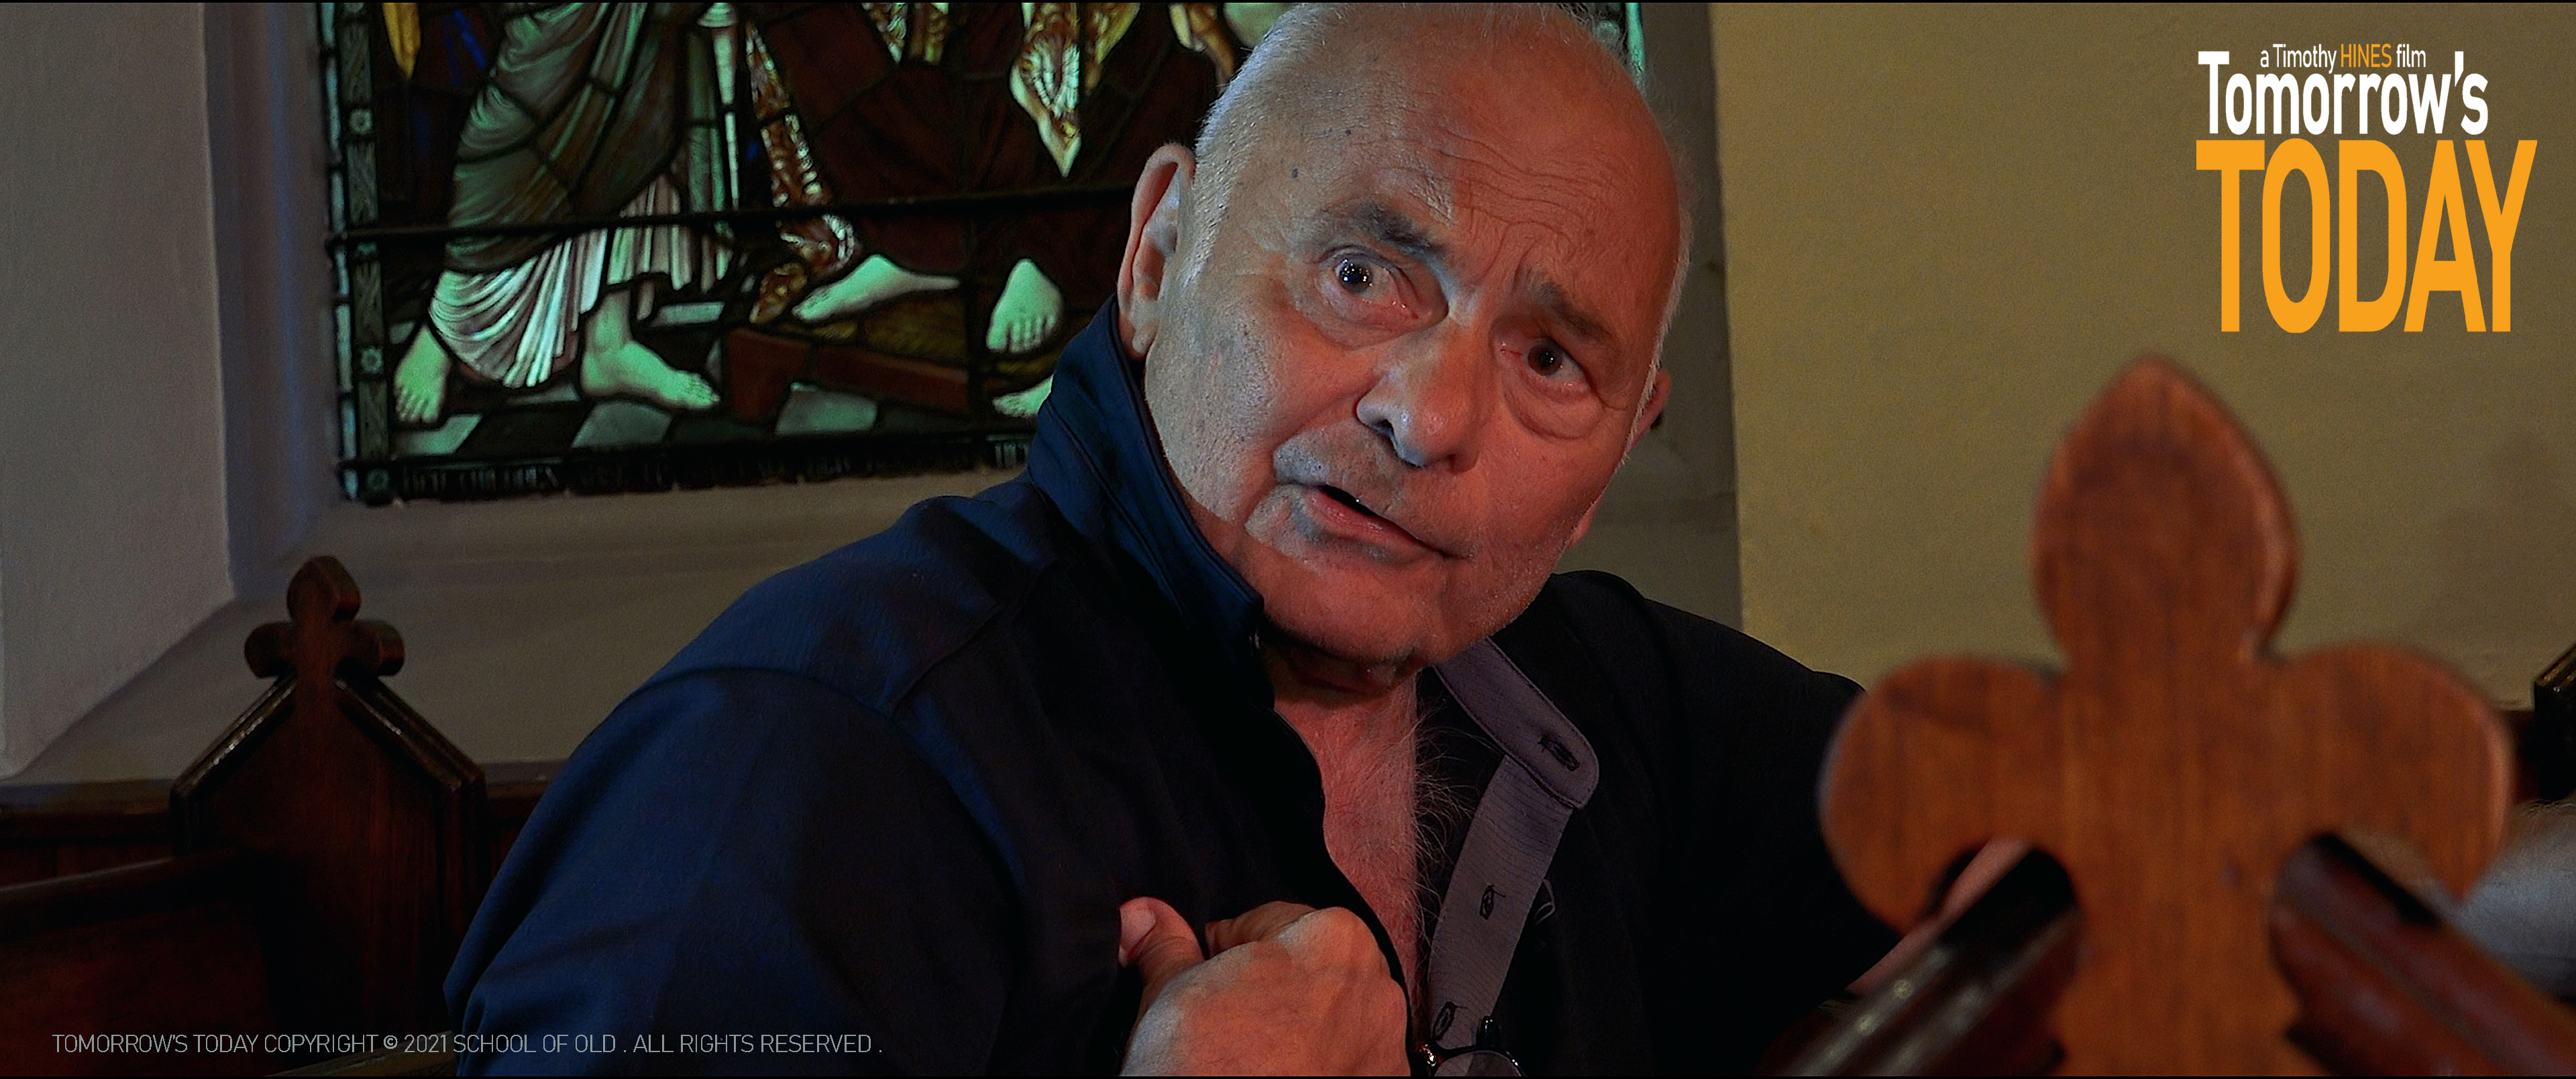 Academy Award nominee Burt Young turns in Powerful Performance in Tomorrow's Today premiering at International Day of Comedy Film Festival in Hollywood April 3rd